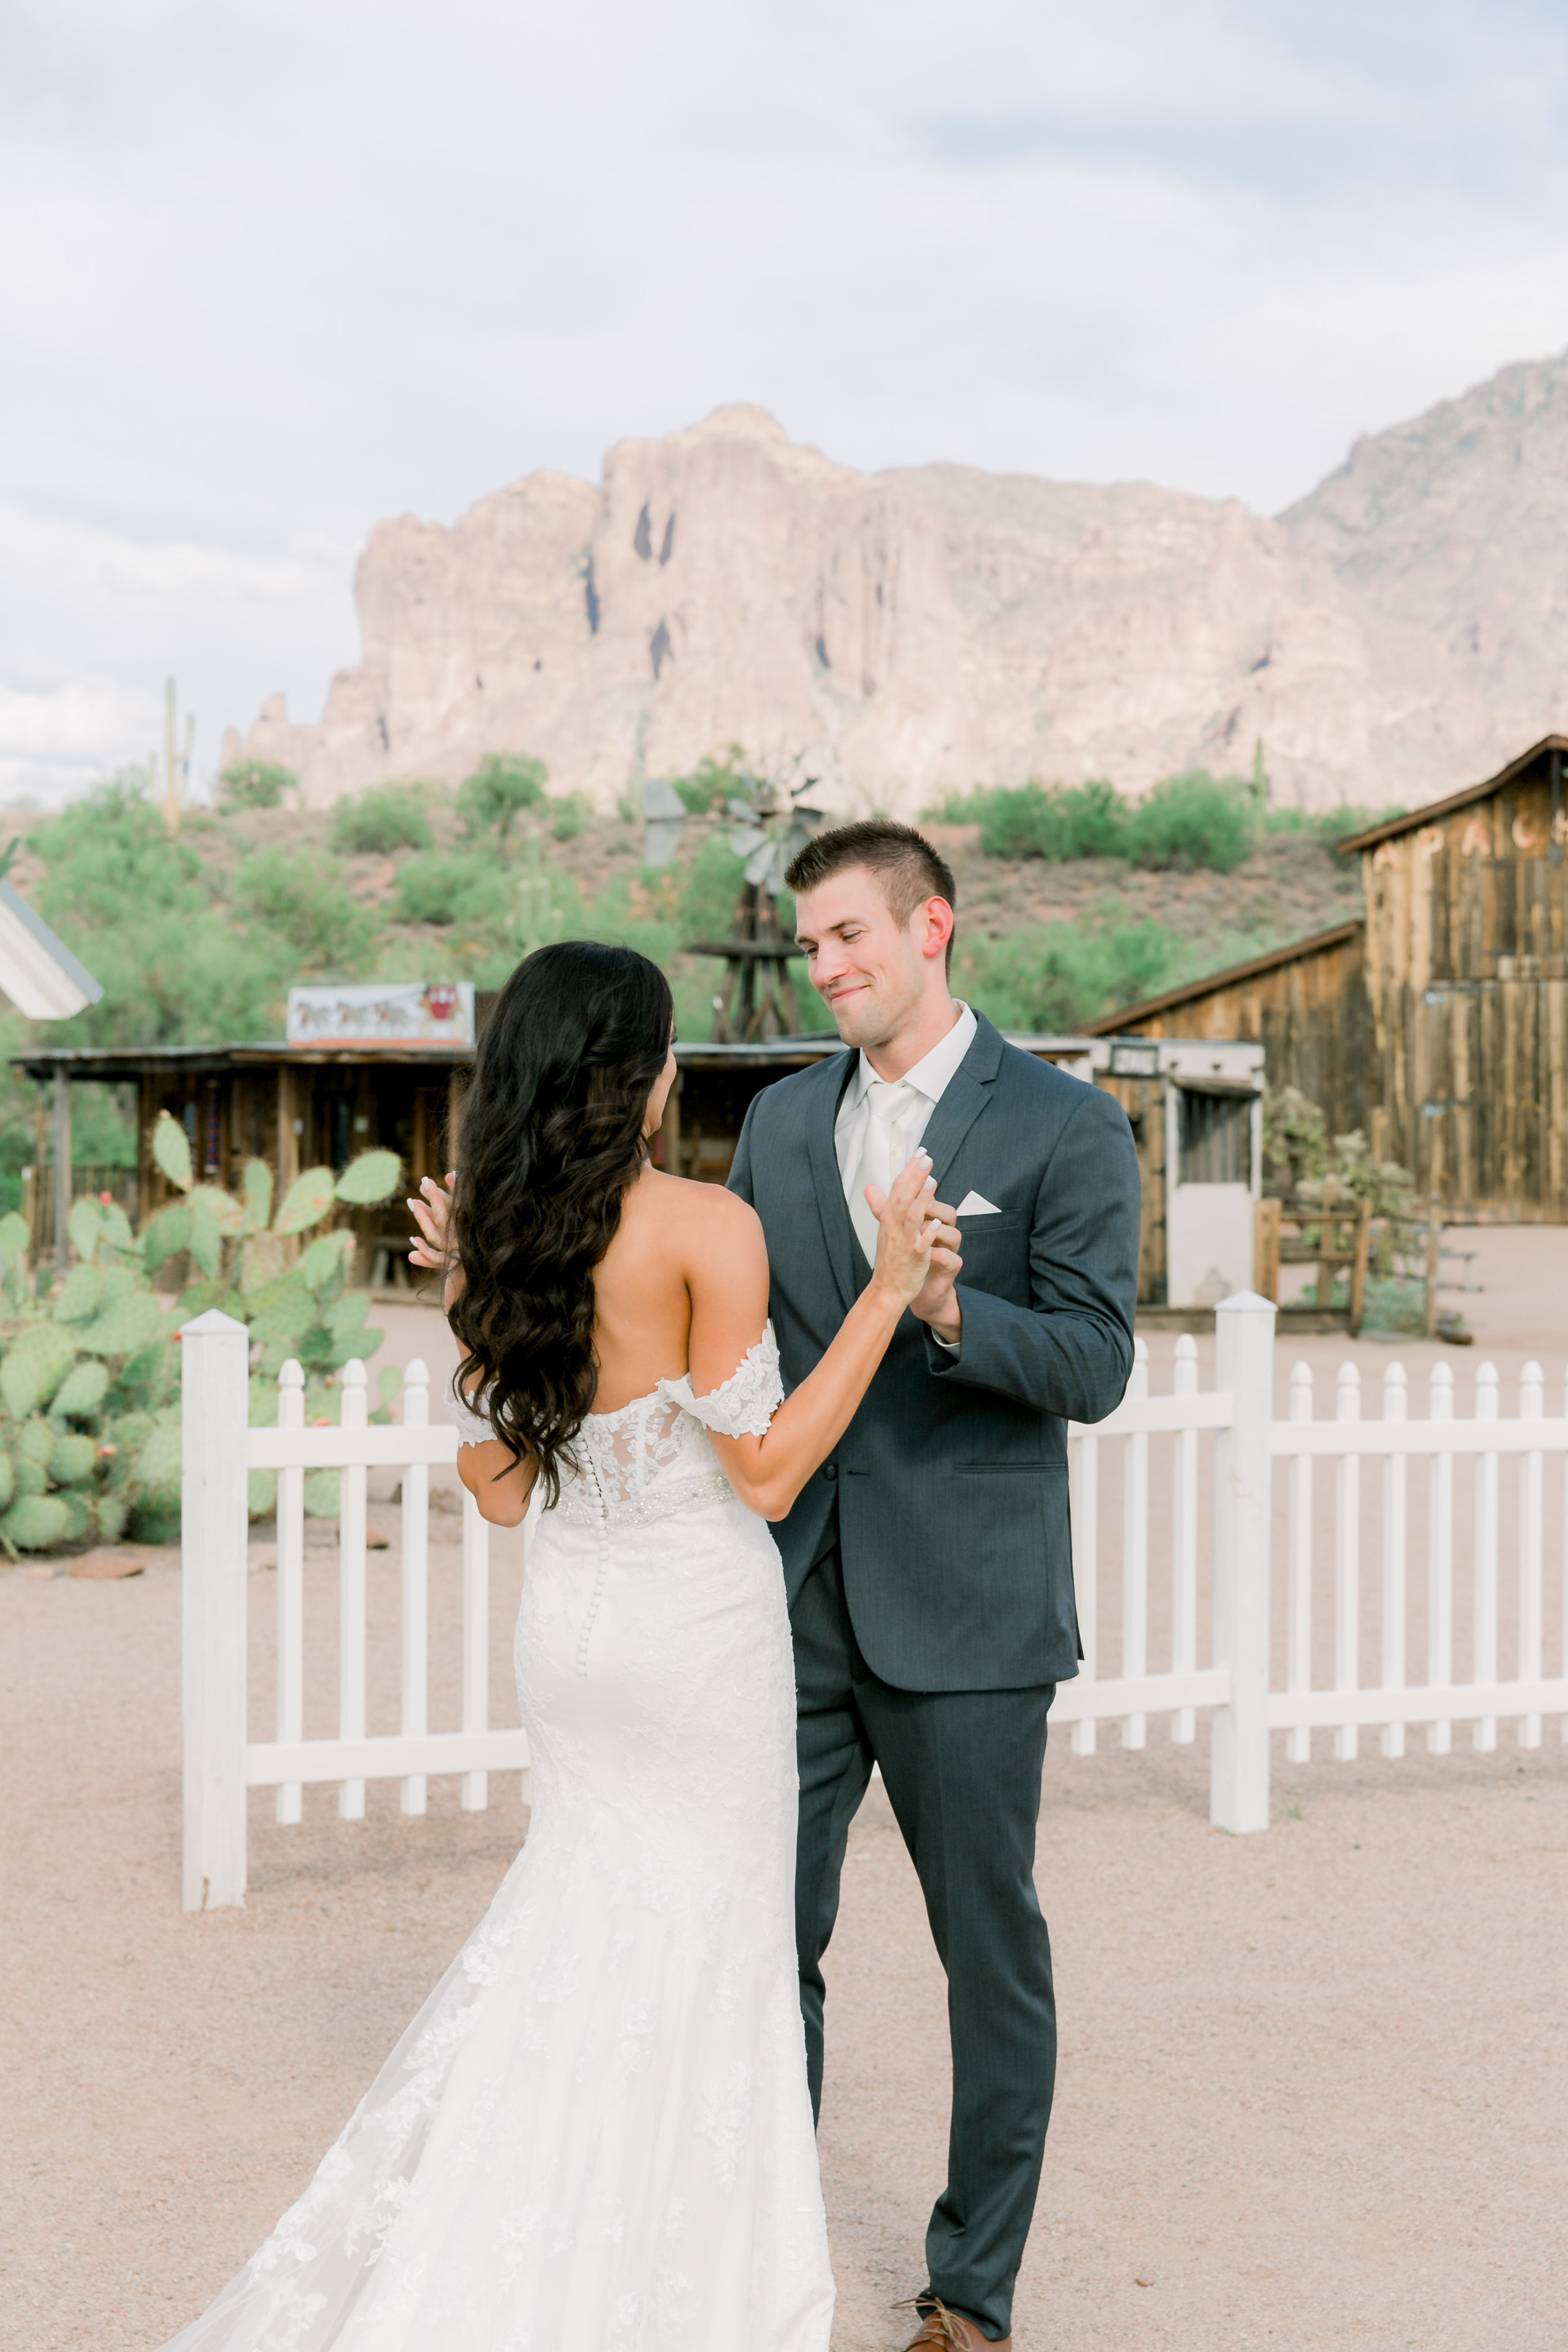 Karlie Colleen Photography - Arizona Wedding - The Paseo Venue - Jackie & Ryan -86